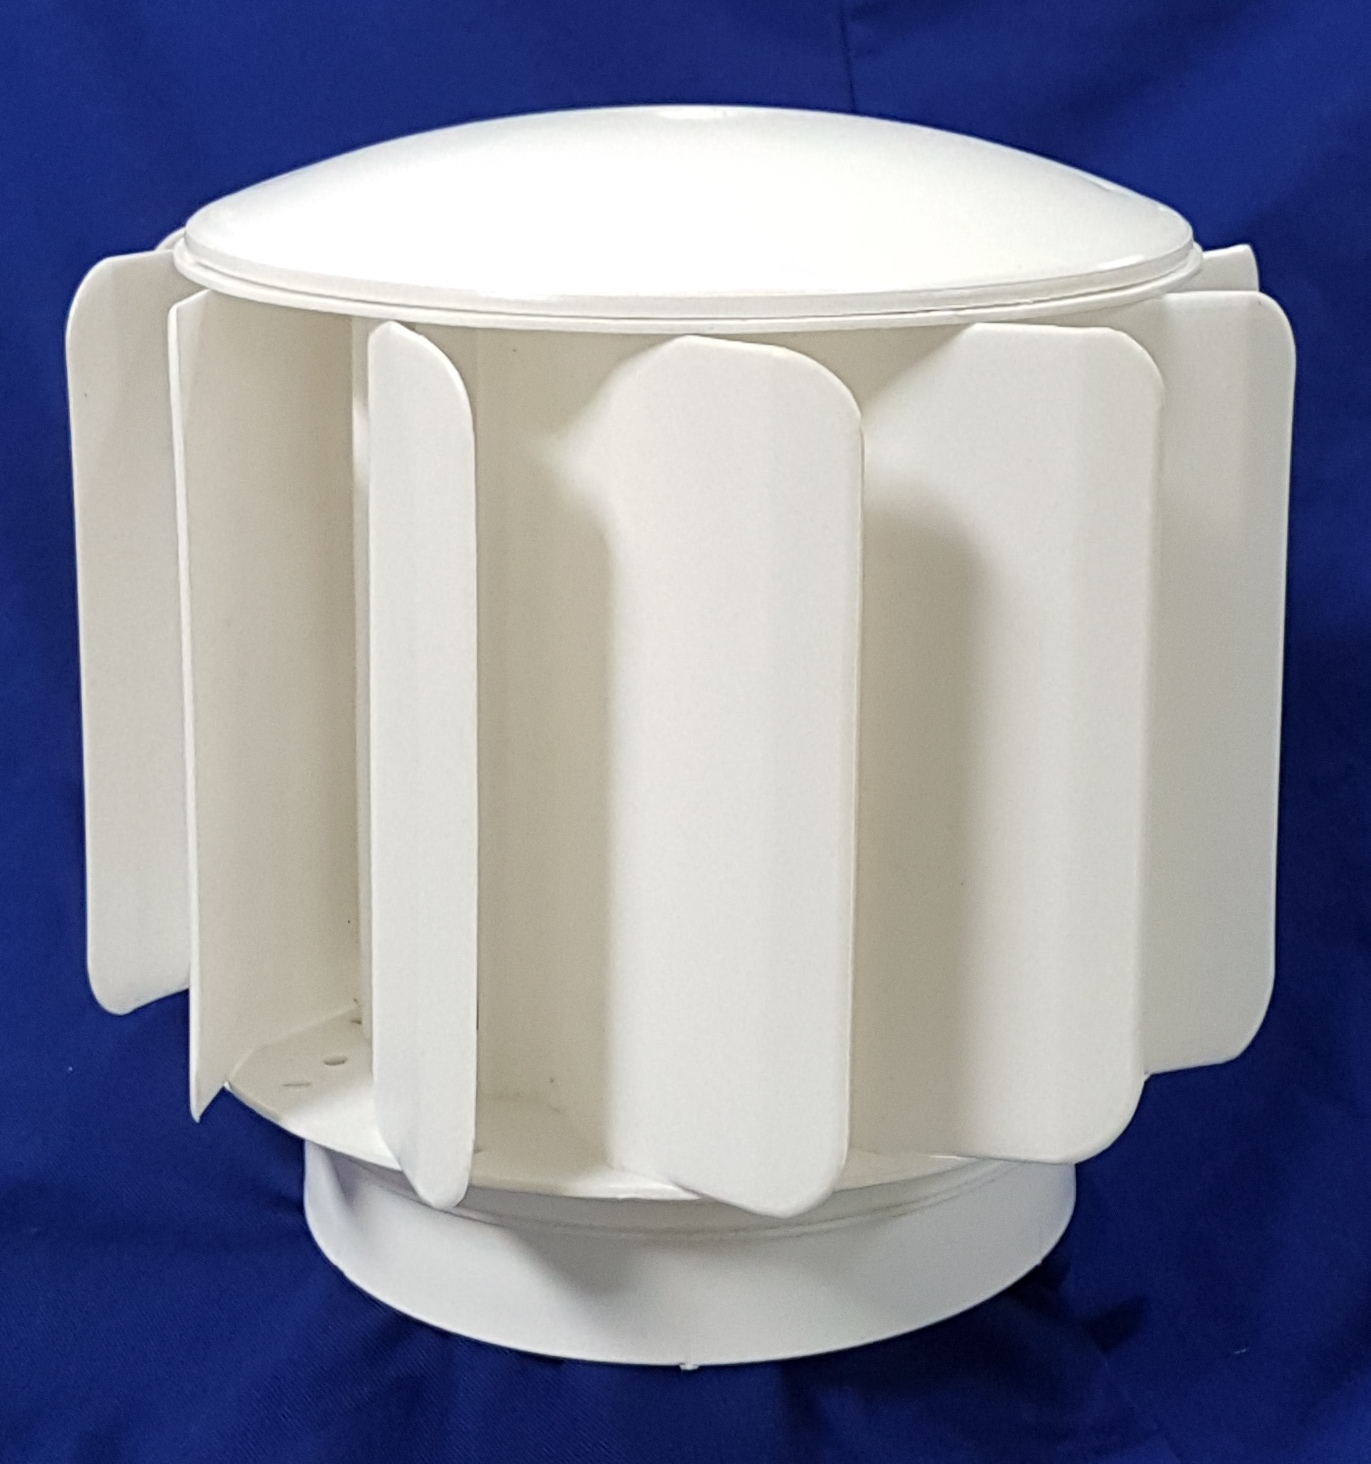 Sewer / toilet vent 250mm diameter to fit 110mm pipe (available in silver and ivory-white)